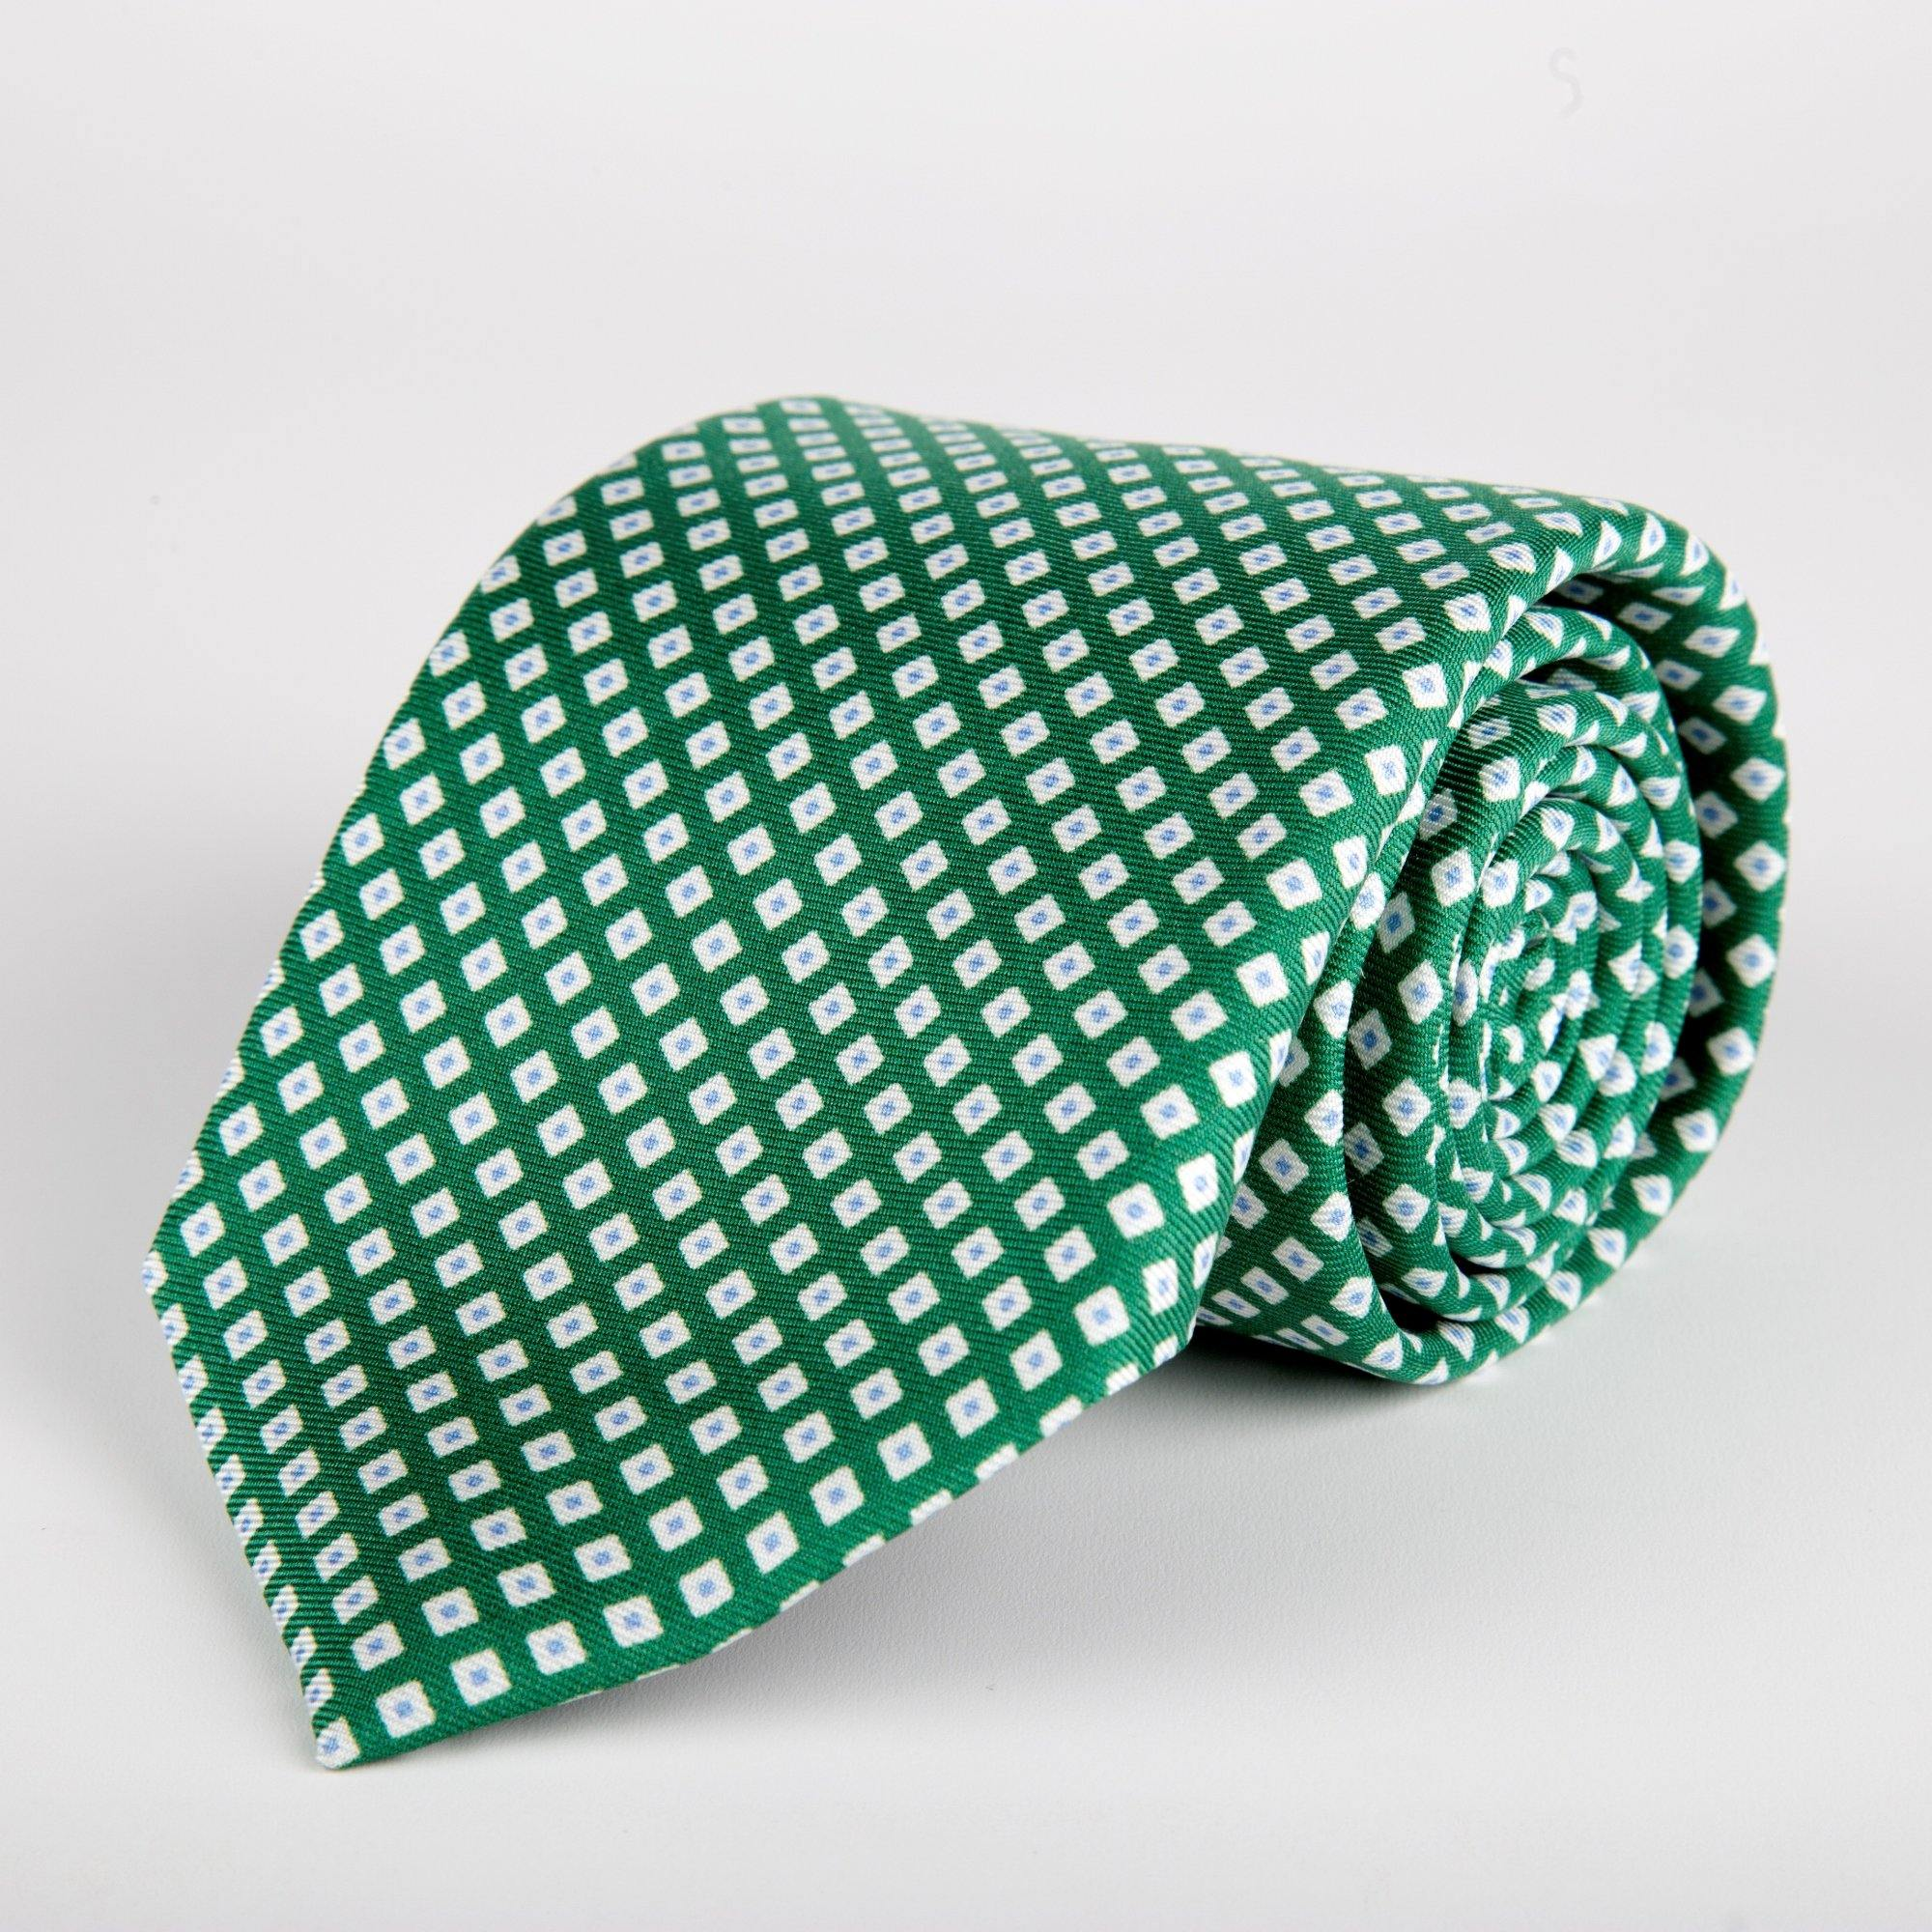 Green Geometric Diamond Printed Silk Tie Hand Finished - British Made